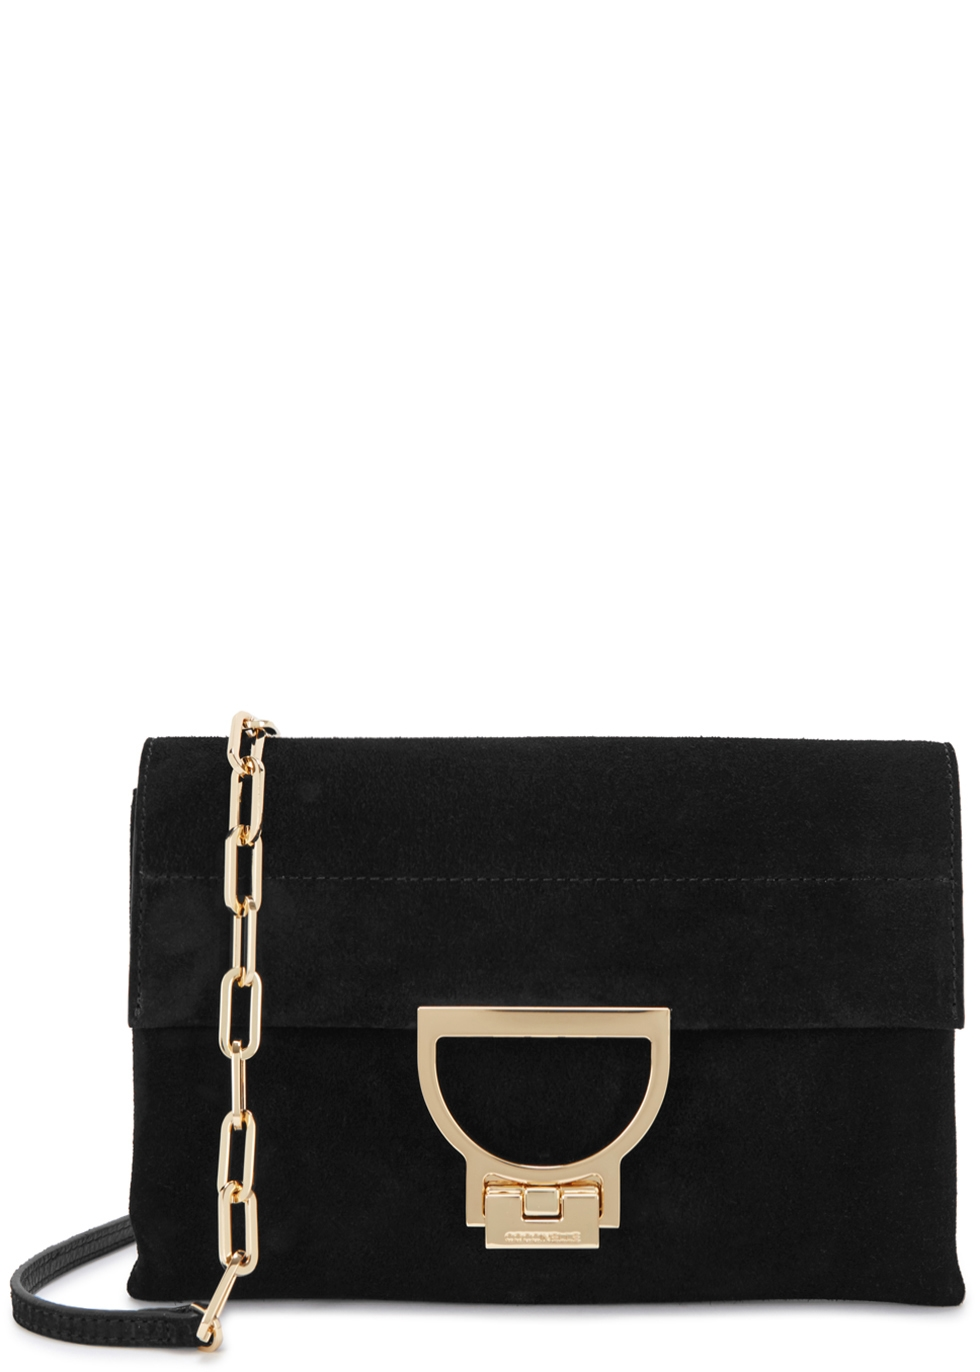 COCCINELLE ARLETTIS BLACK SUEDE CROSS-BODY BAG